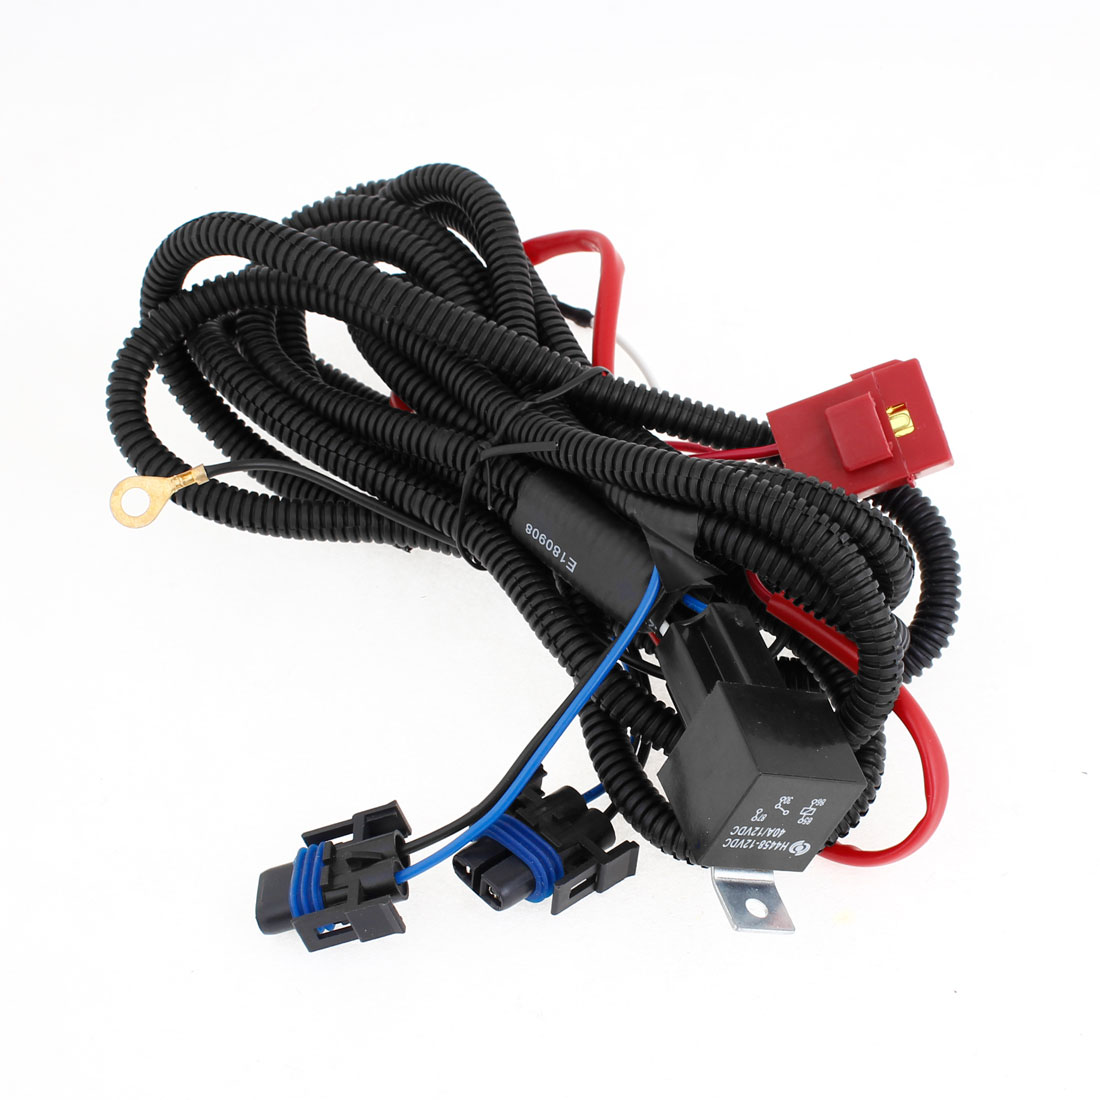 h11 hid headlight fog light relay wiring harness wire for auto rh walmart com Headlight Wiring Harness Repair Putco Headlight Wiring Harness